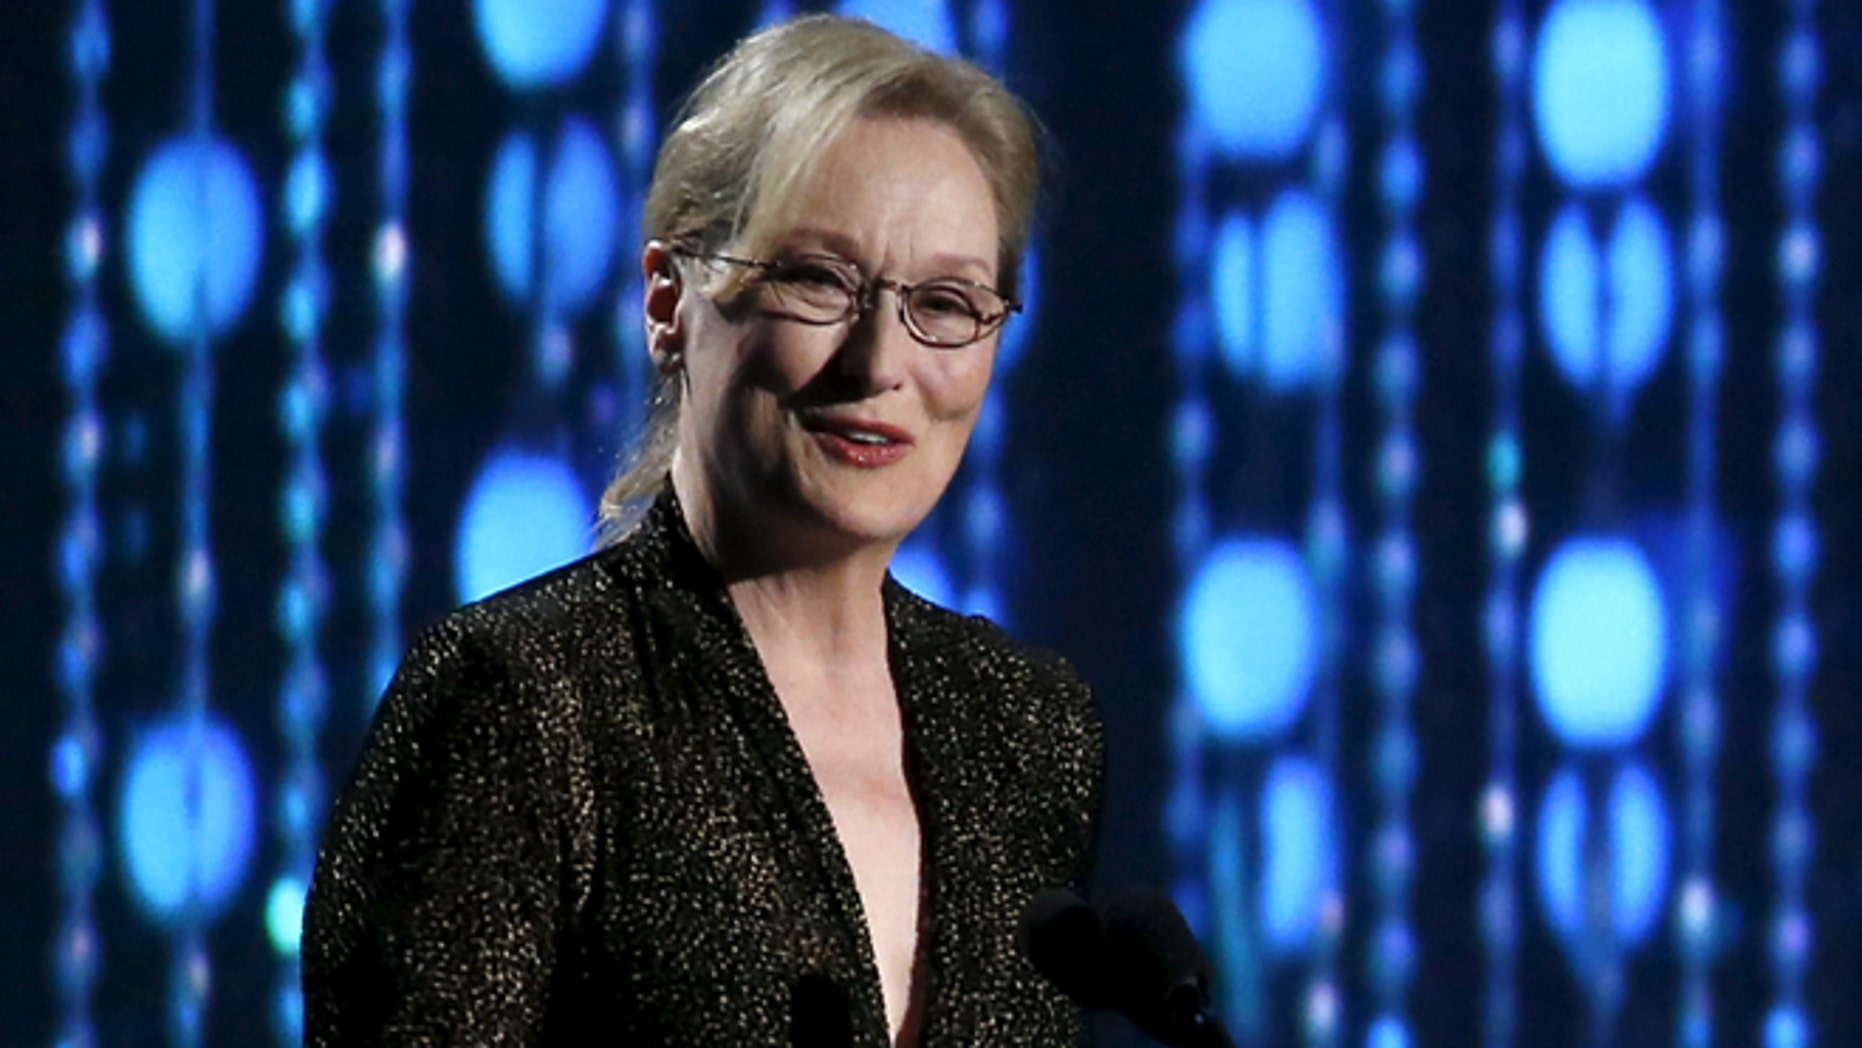 November 14, 2015. Actress Meryl Streep speaks at the 7th Annual Academy of Motion Picture Arts and Sciences Governors Awards at The Ray Dolby Ballroom in Hollywood, California.